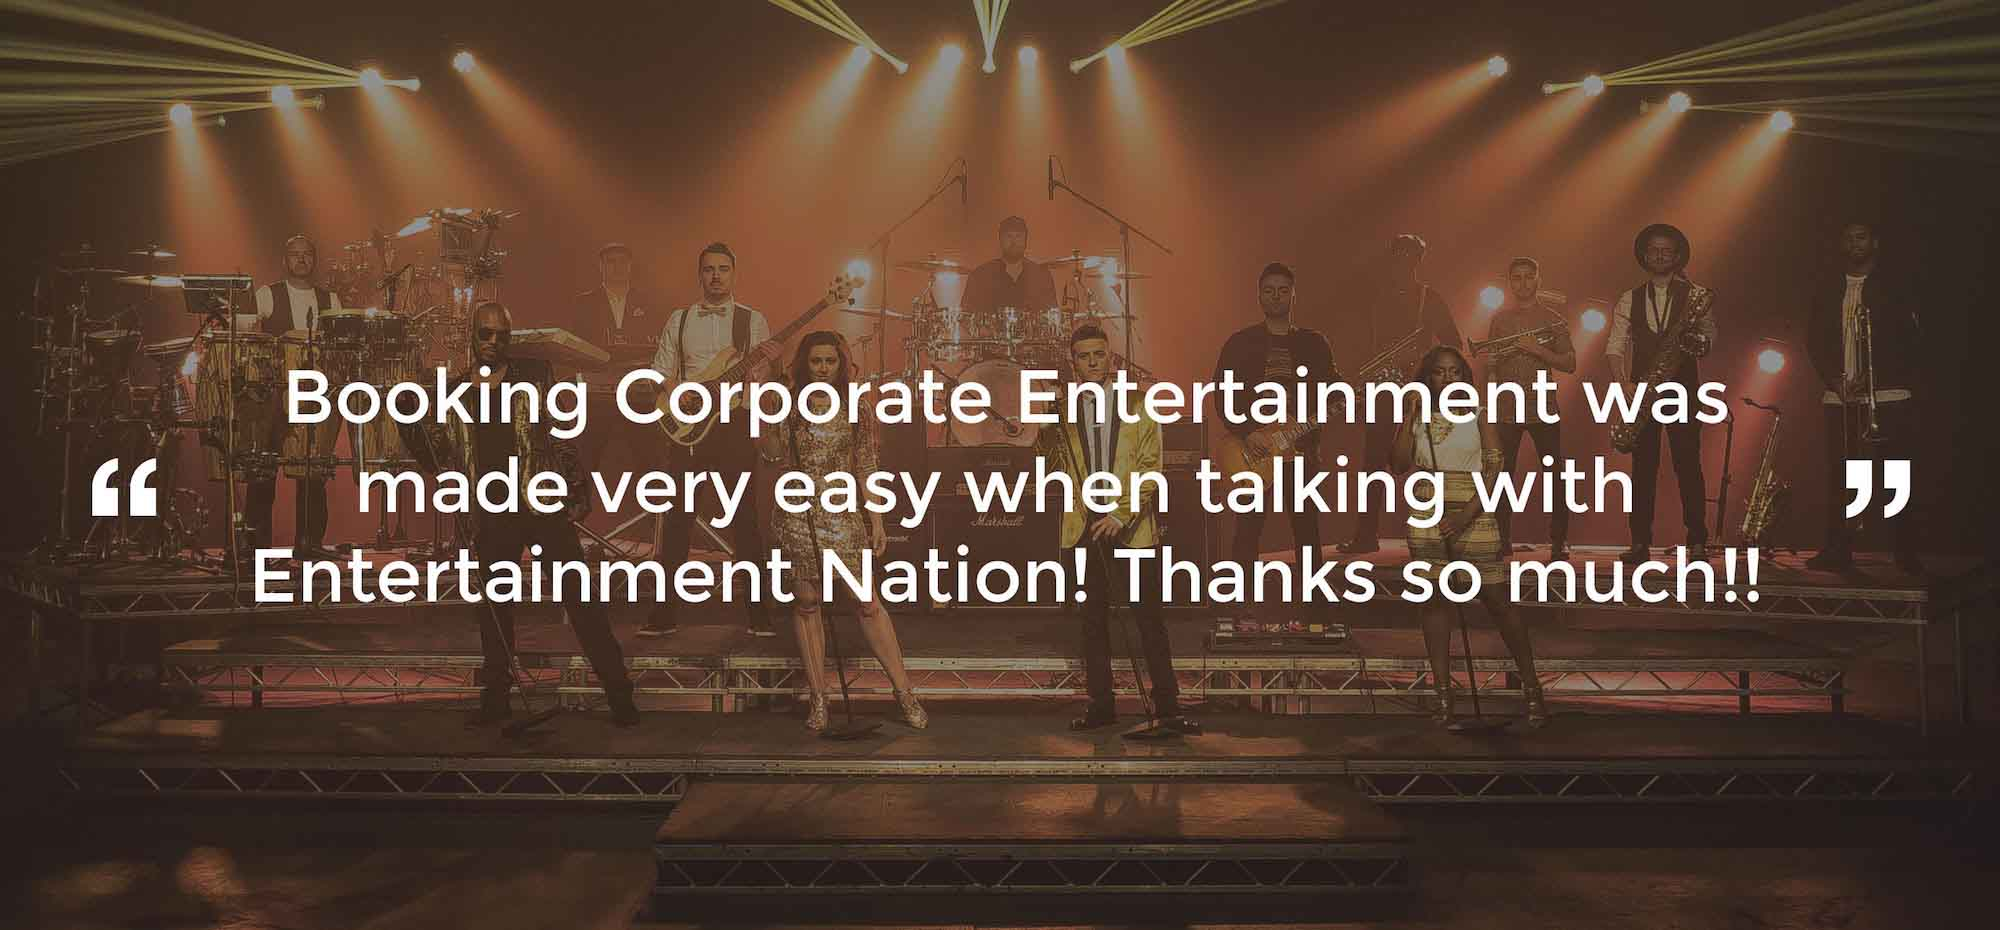 Client Review of Corporate Entertainment Durham